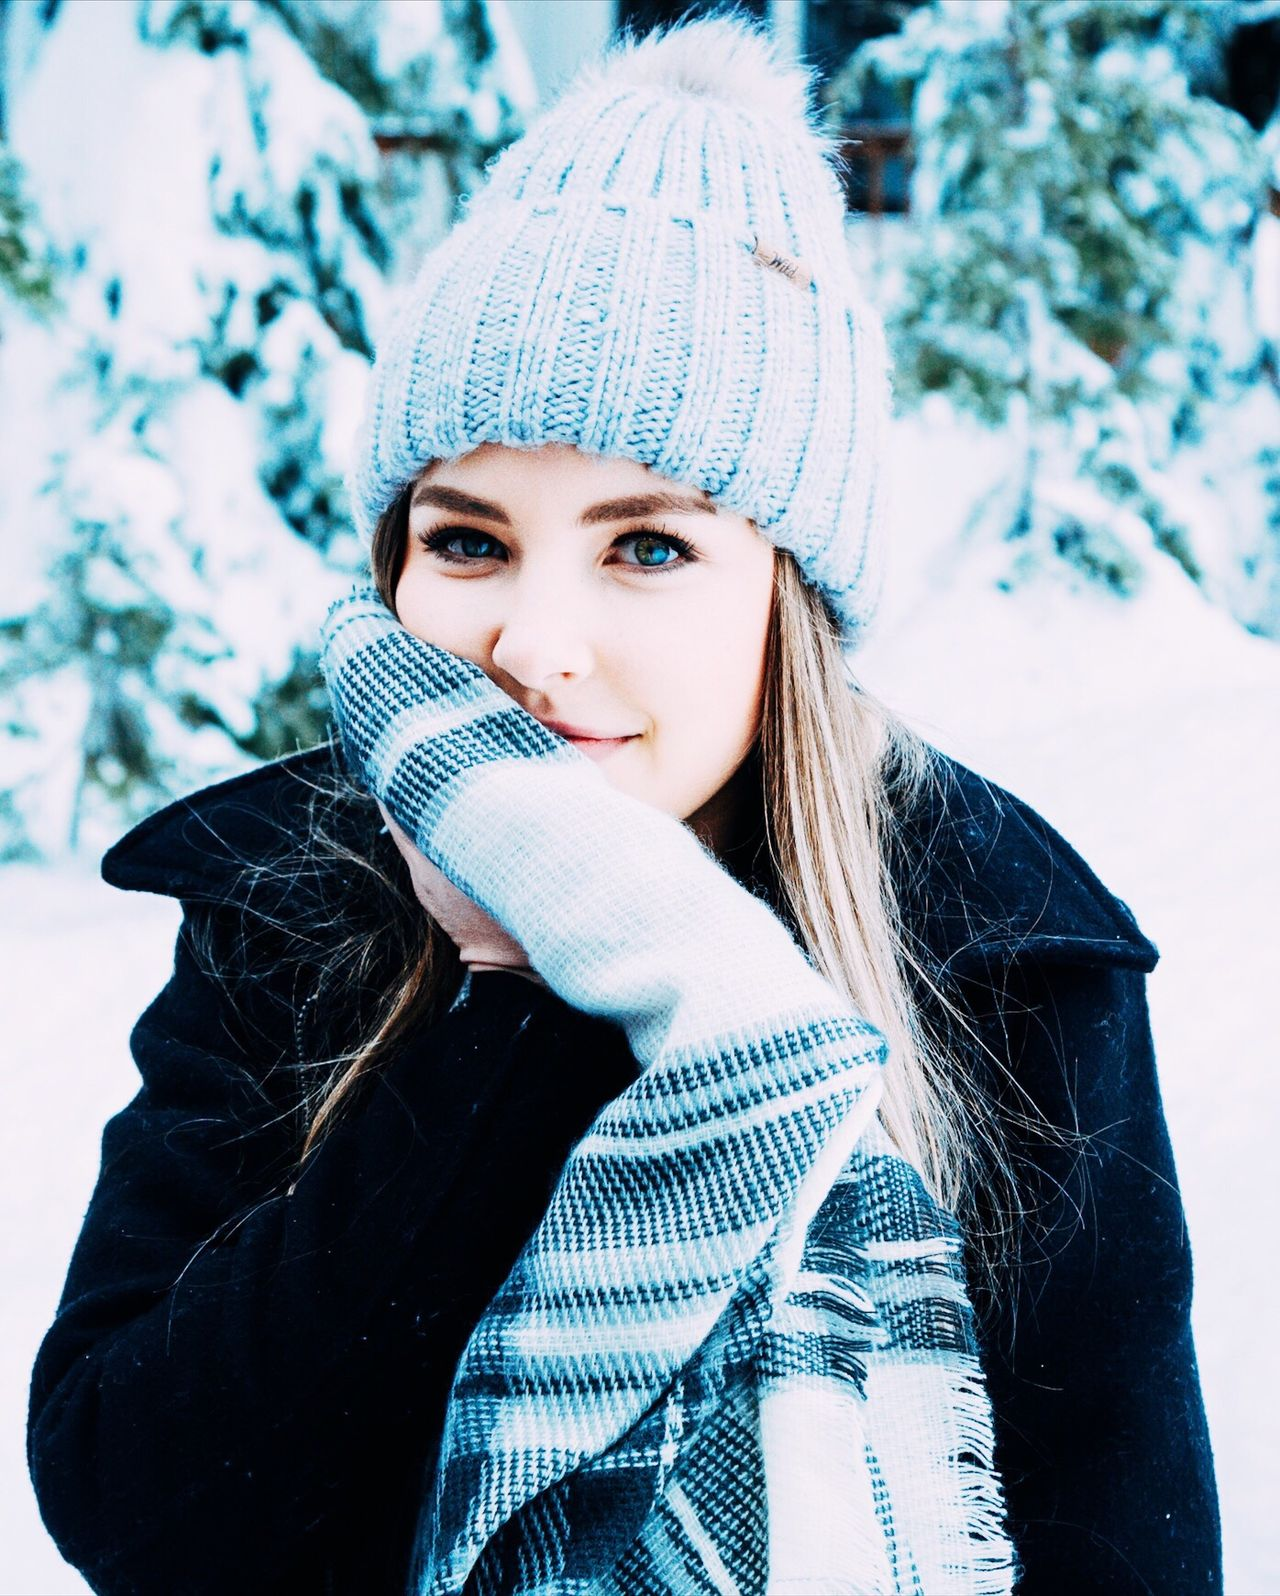 Uniqueness Winter Knit Hat Beautiful People Cold Temperature Young Adult Warm Clothing Snow Women Portrait Beauty Cardigan Sweater Headshot Young Women Beautiful Woman One Person Nature Human Face Glove Lifestyles Beauty In Nature